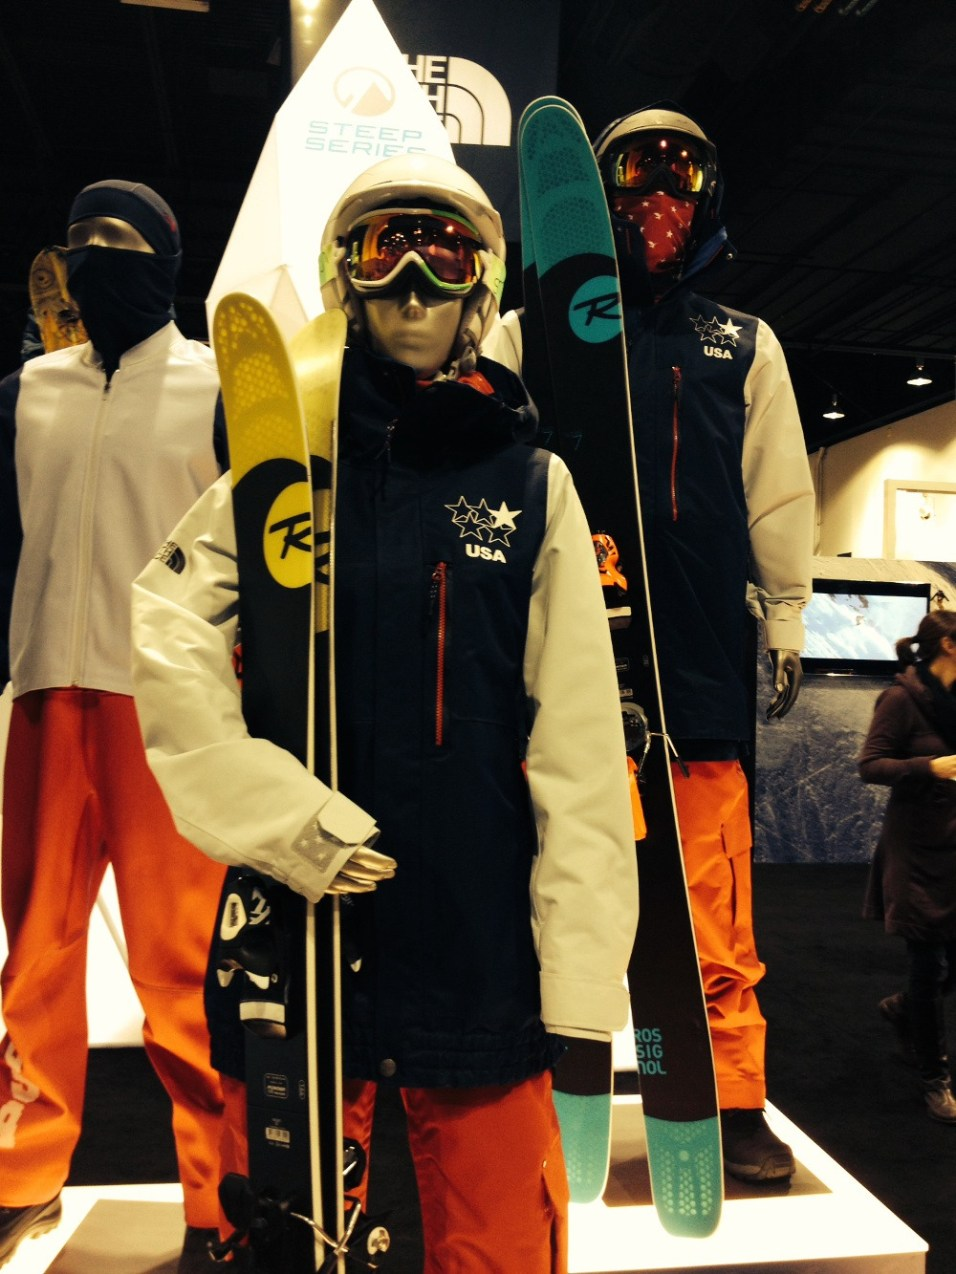 The North Face Official U.S. Freeskiing Uniforms